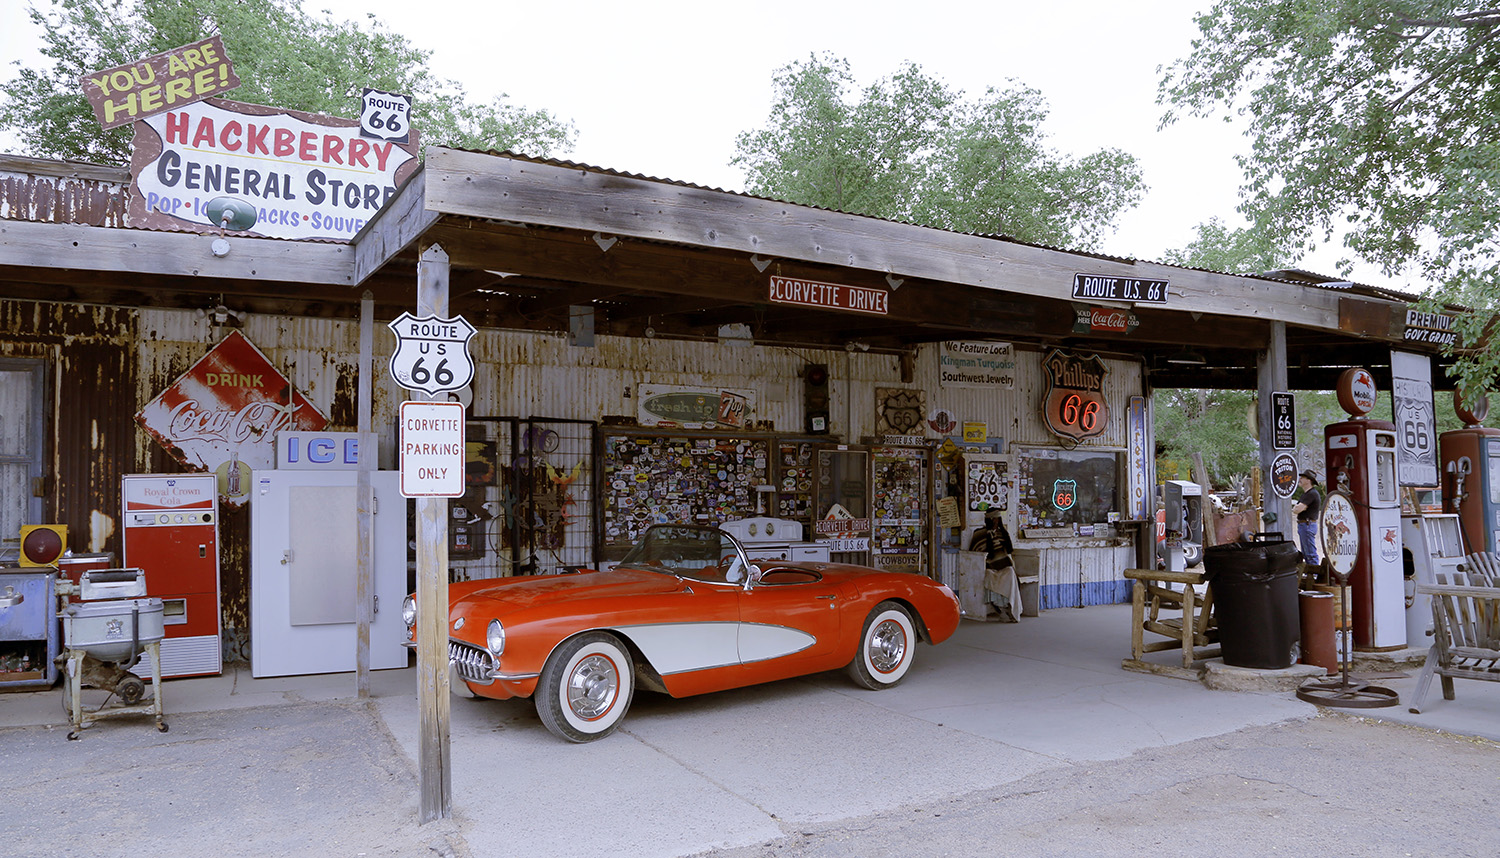 The Hackberry General Store